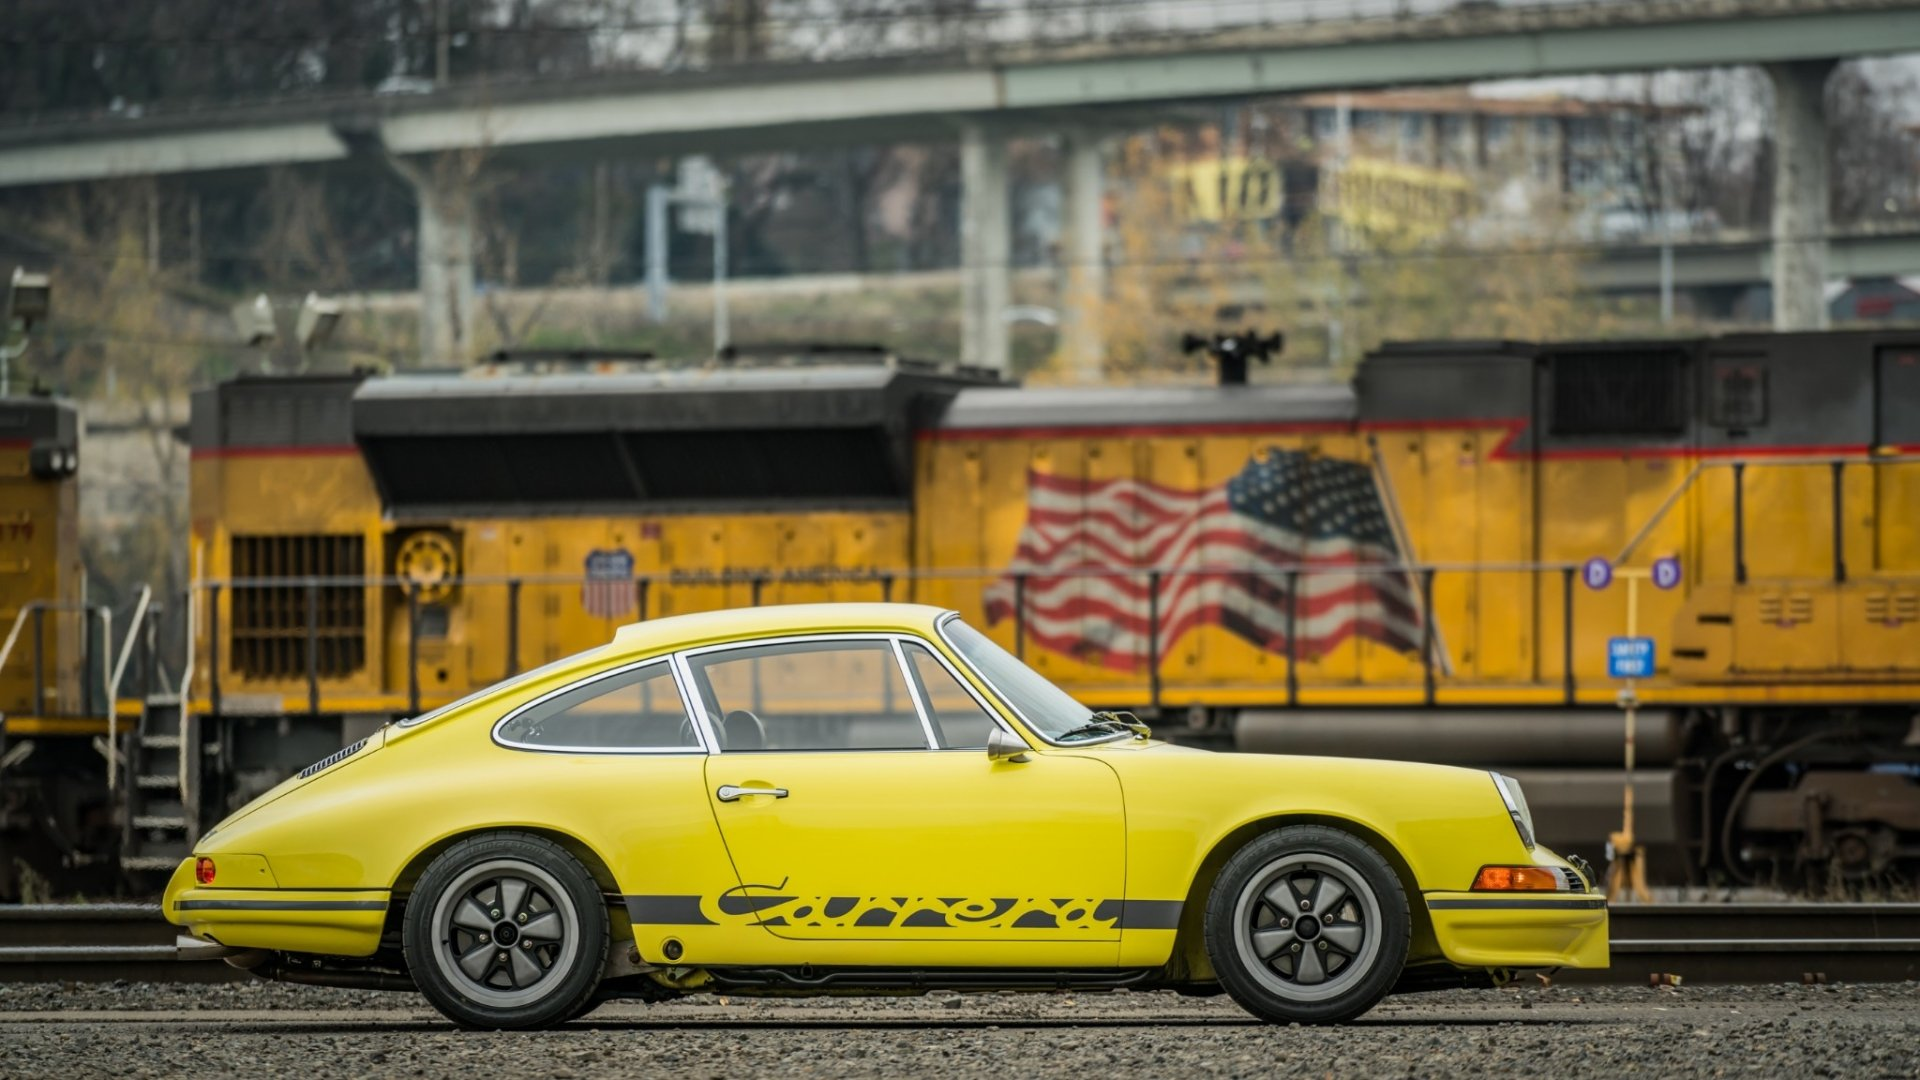 Vehicles - Porsche 911 Carrera T  Sport Car Yellow Car Old Car Car Wallpaper